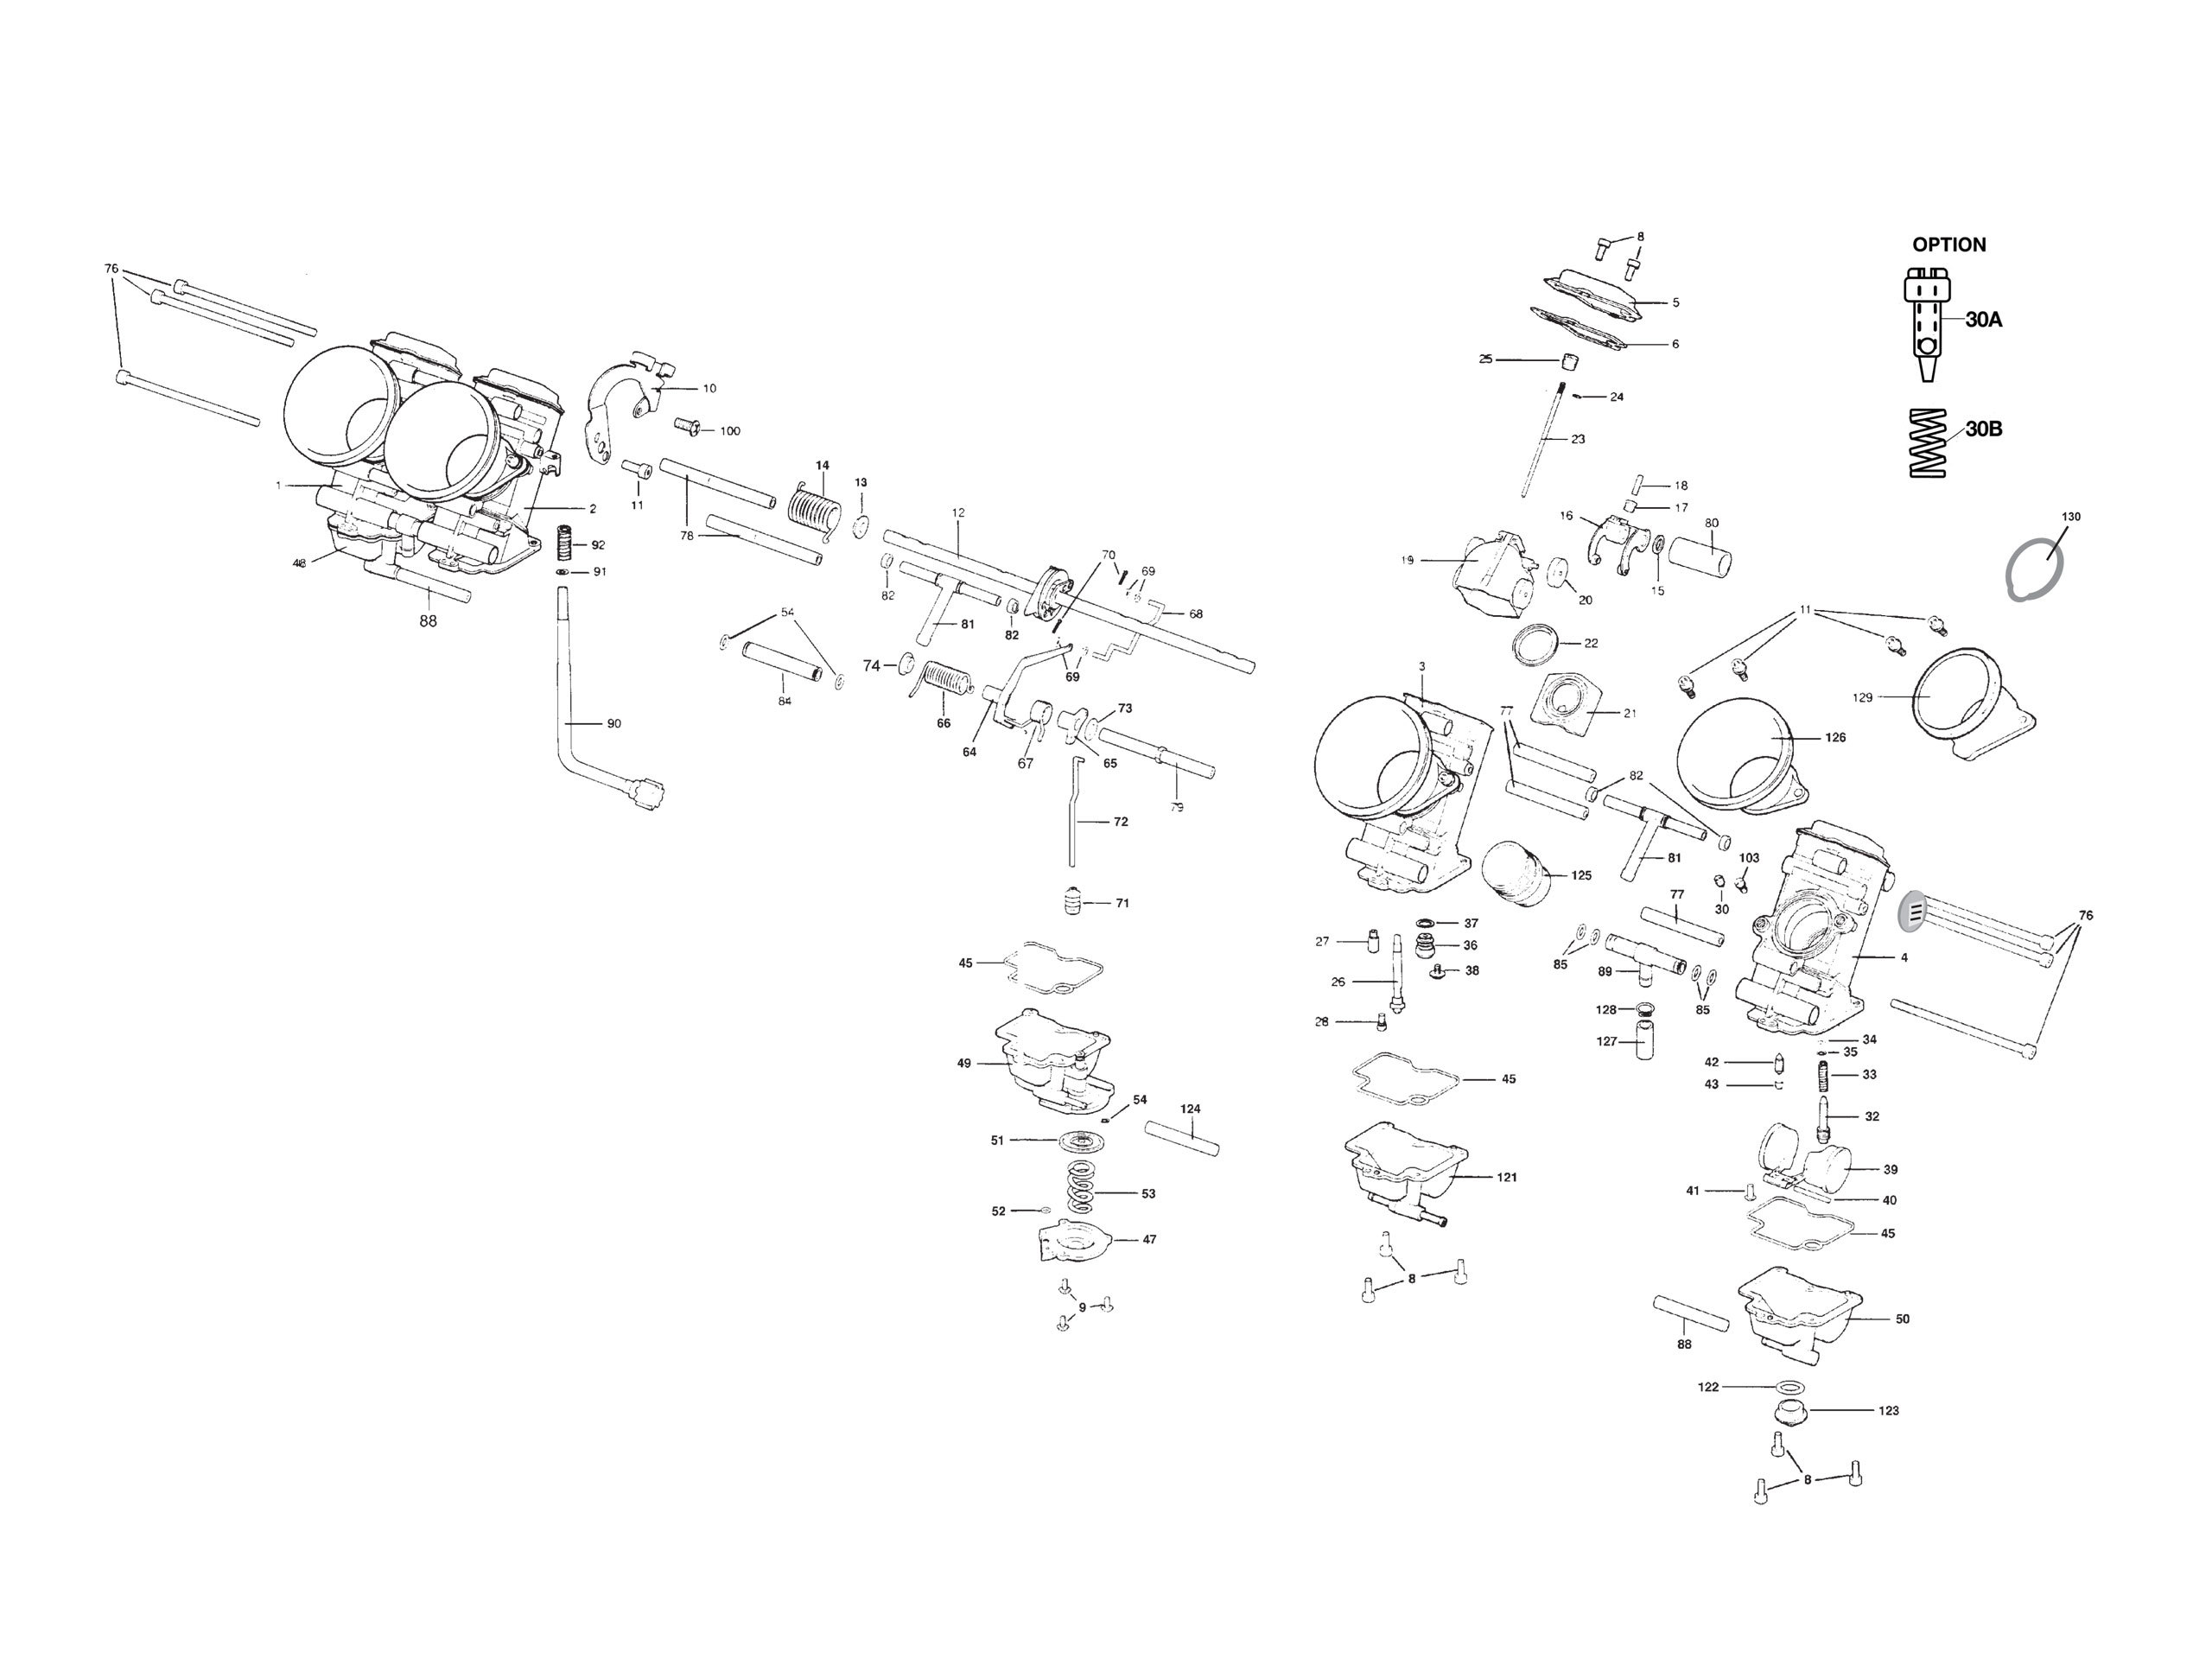 Aprilia engine diagrams also 126675 moreover 93942 ledningsdiagram in addition kymco agility 125 wiring diagram furthermore